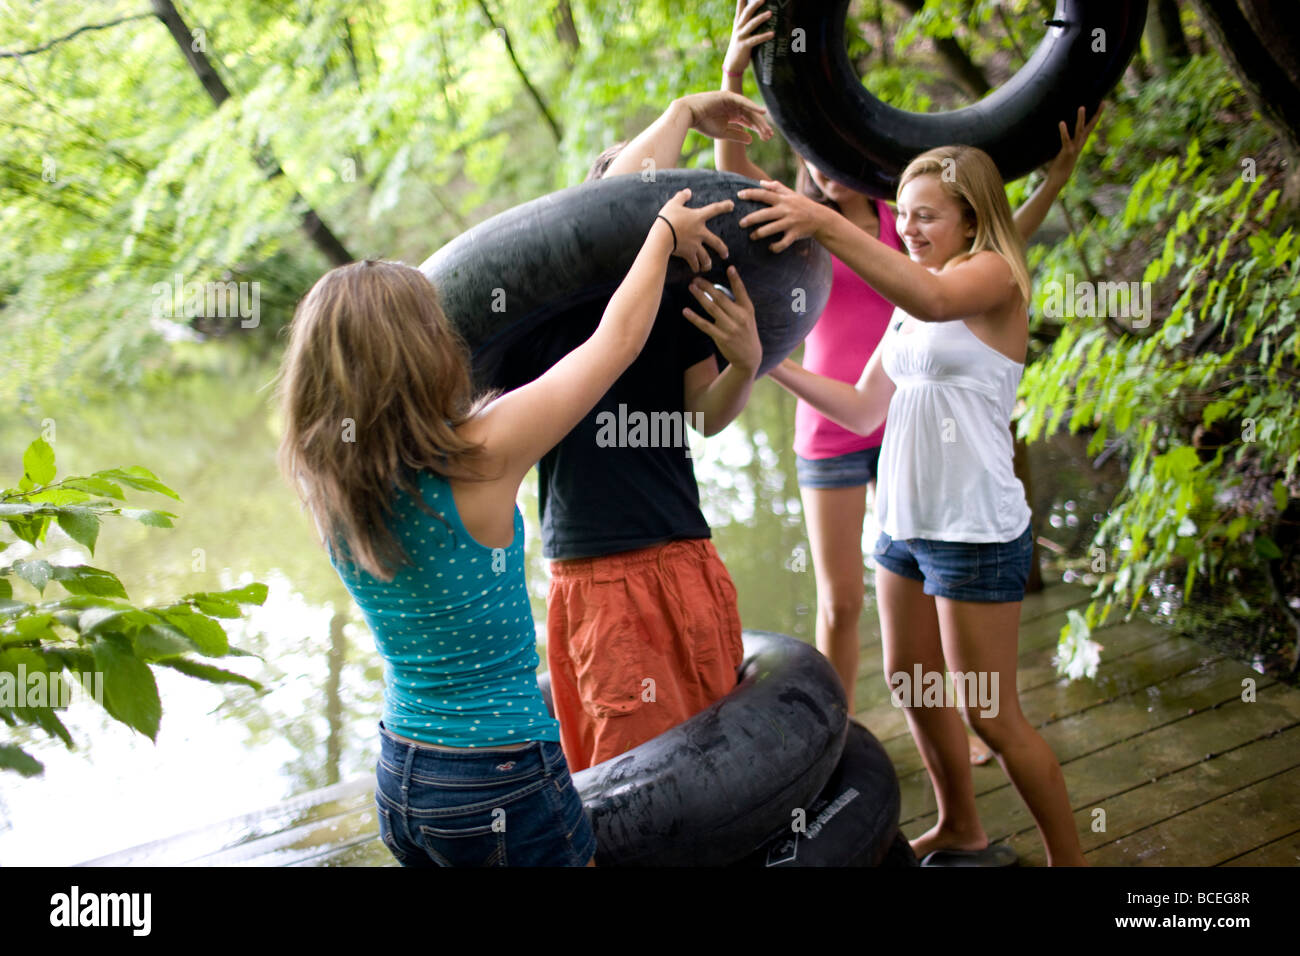 Group of teenagers playing around with innertubes - Stock Image